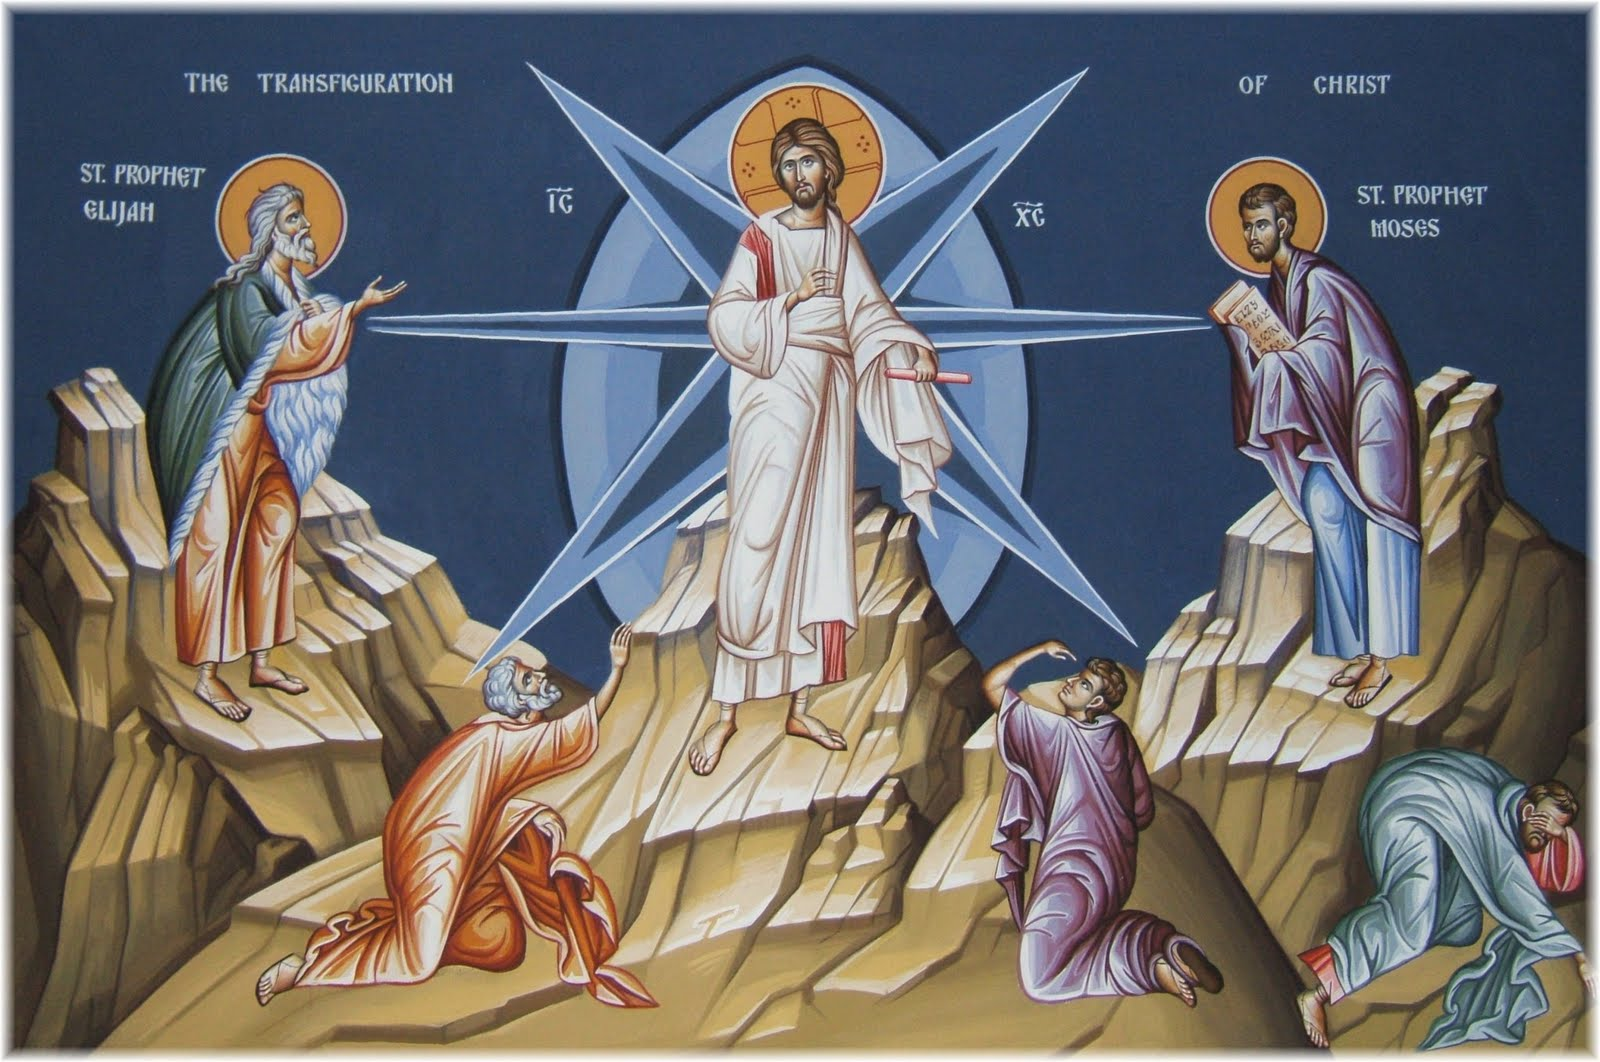 transfiguration of christ The transfiguration of jesus is an event reported in the new testament when jesus is transfigured and christ's redemptive sacrifice was the purpose for which.